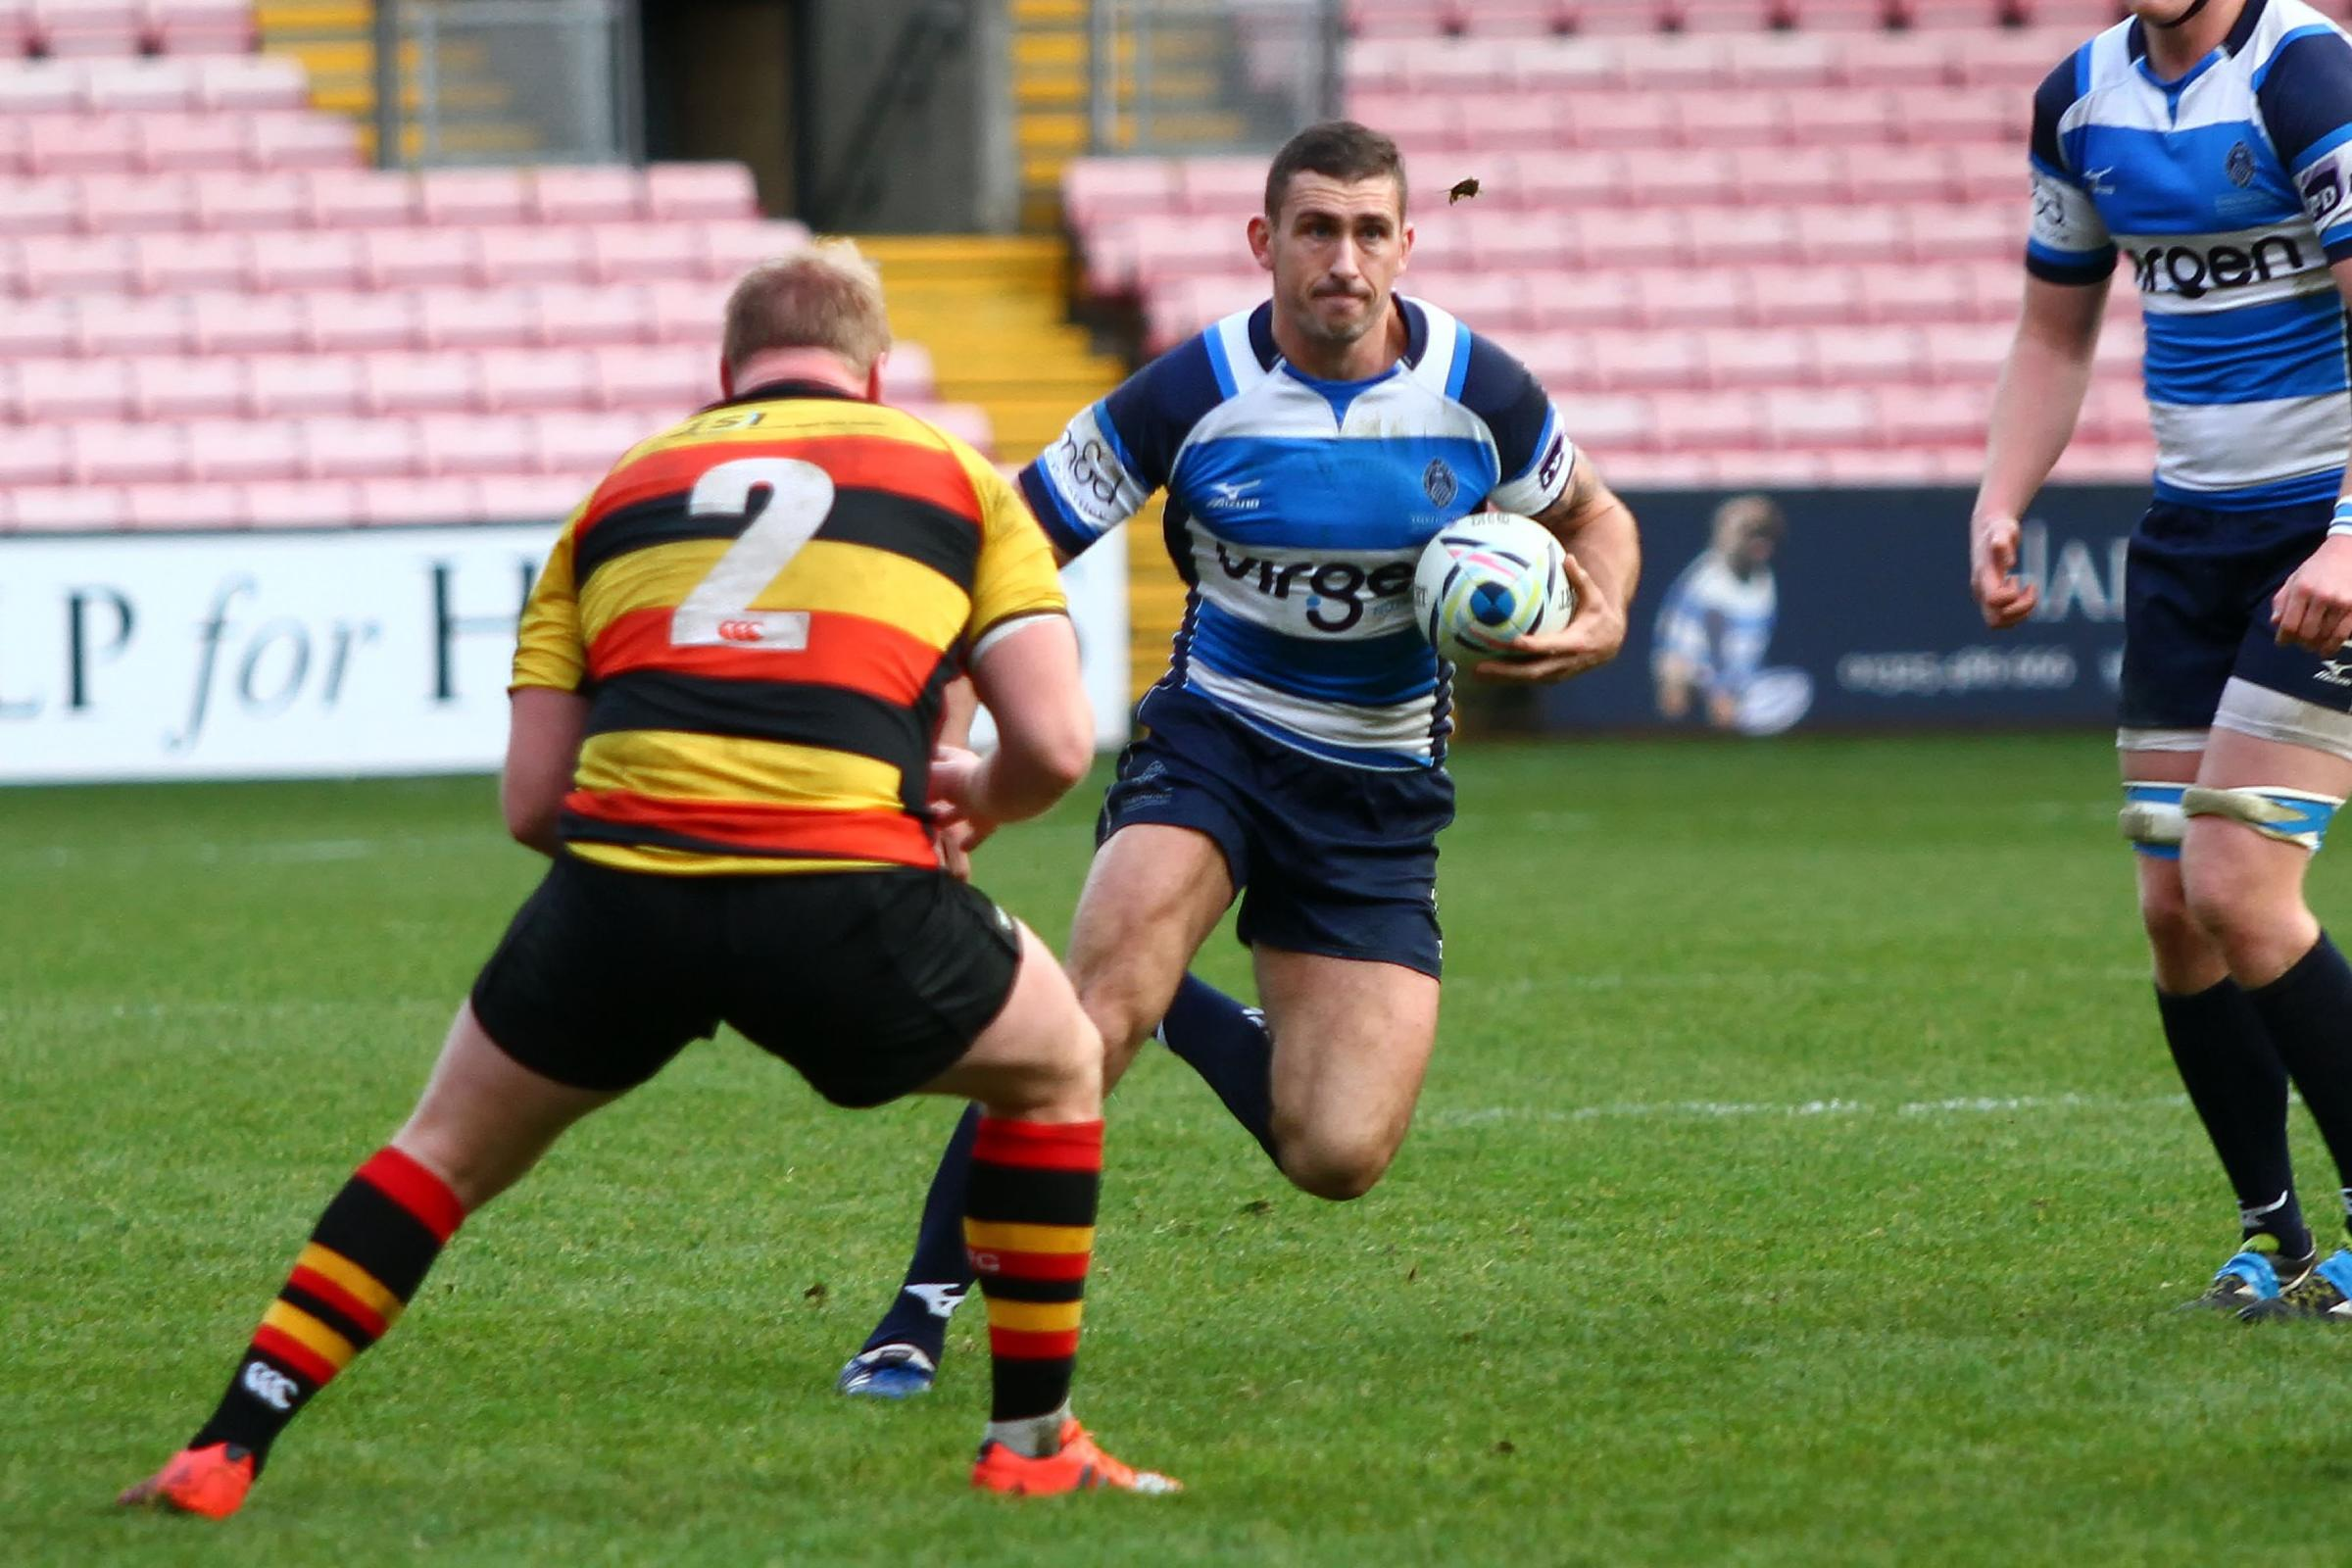 NEW DEAL: Garry Law of Darlington Mowden Park. Picture: HARRY COOK/SHUTTER PRESS